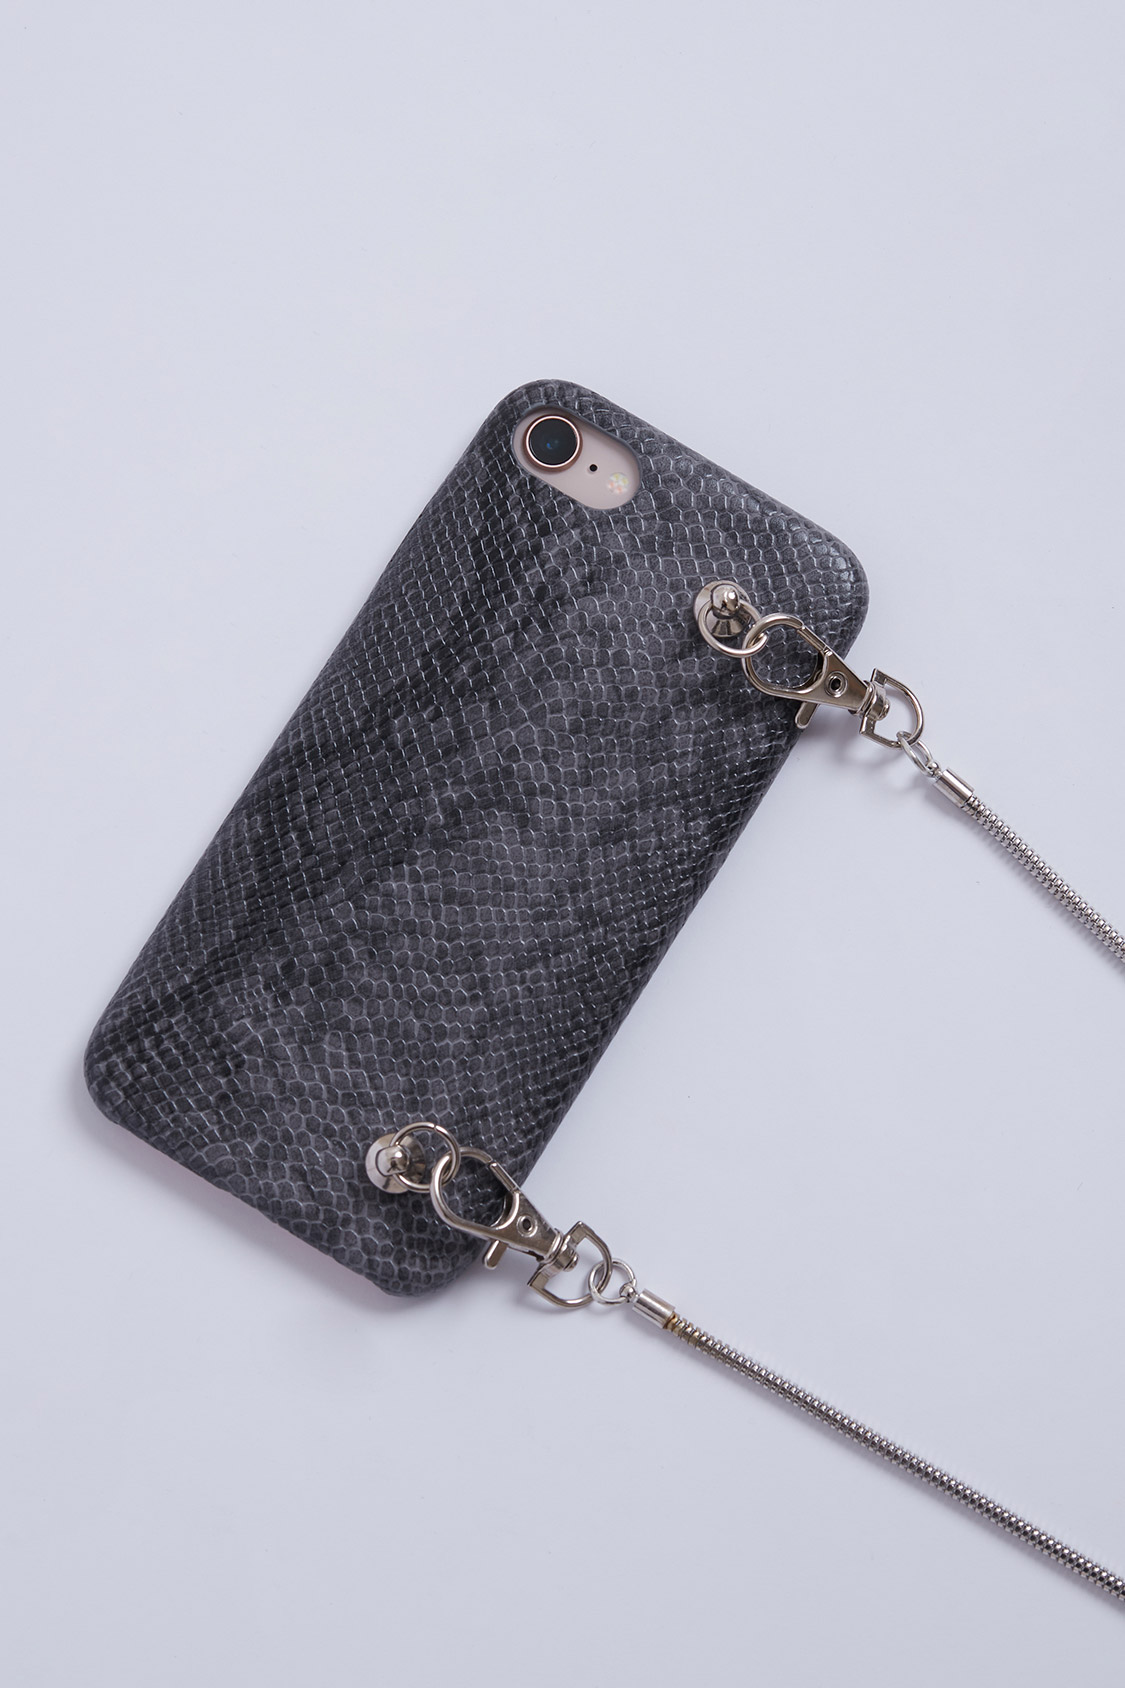 Chain phone case - Iphone 7/8